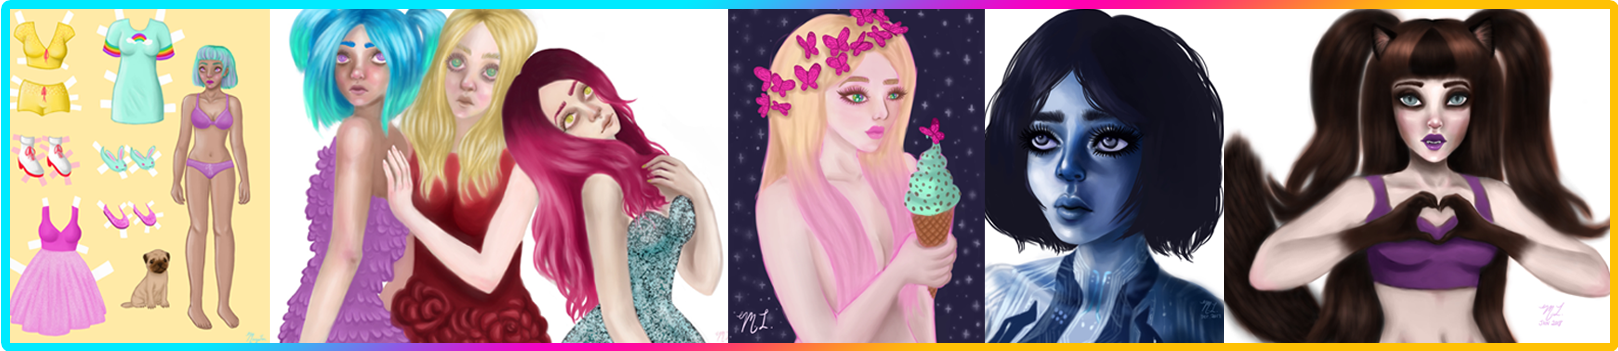 maceylou fantasy art digital art commissions header